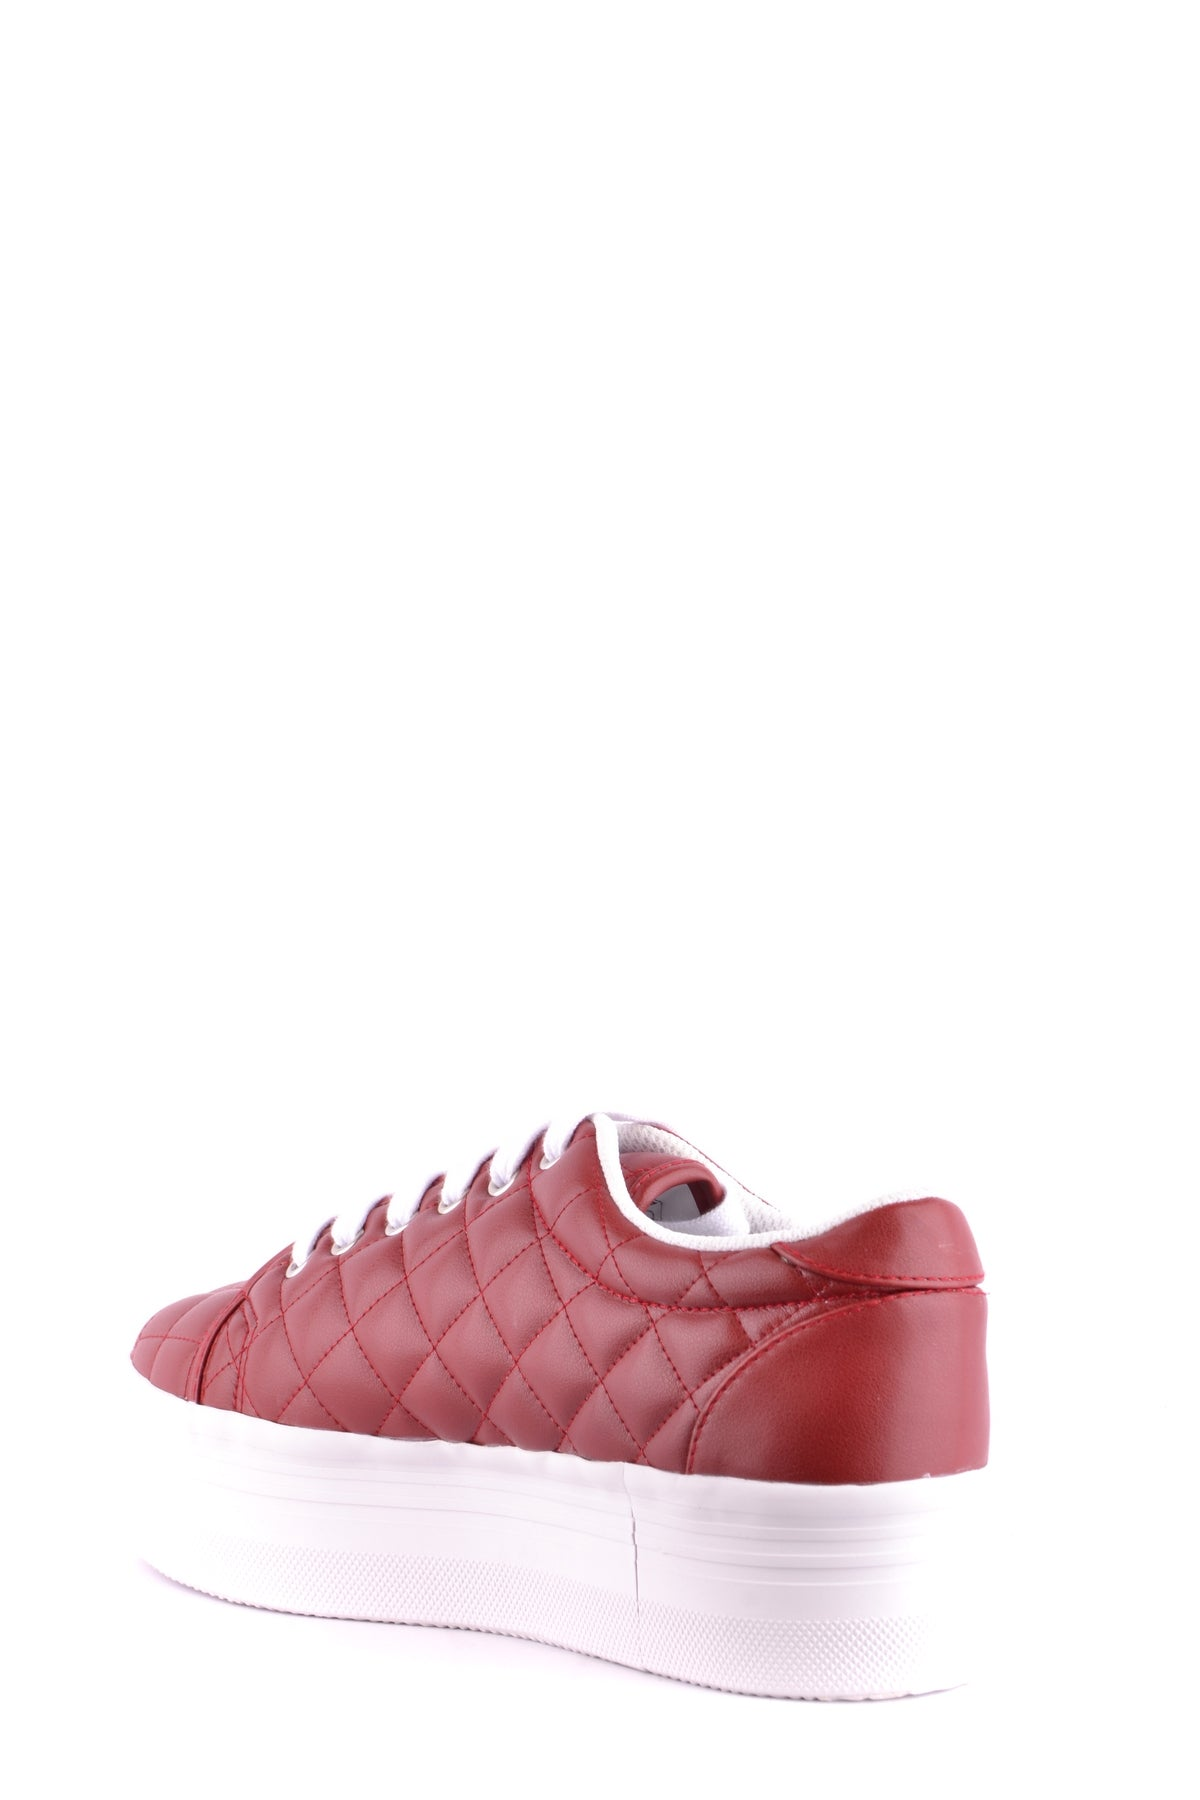 Shoes Jc Play By Jeffrey Campbell-Sneakers - WOMAN-Product Details Type Of Accessory: ShoesTerms: New With LabelYear: 2017Main Color: BurgundySeason: Spring / SummerMade In: VietnamSize: EuGender: WomanComposition: Polyamide 100%-Keyomi-Sook